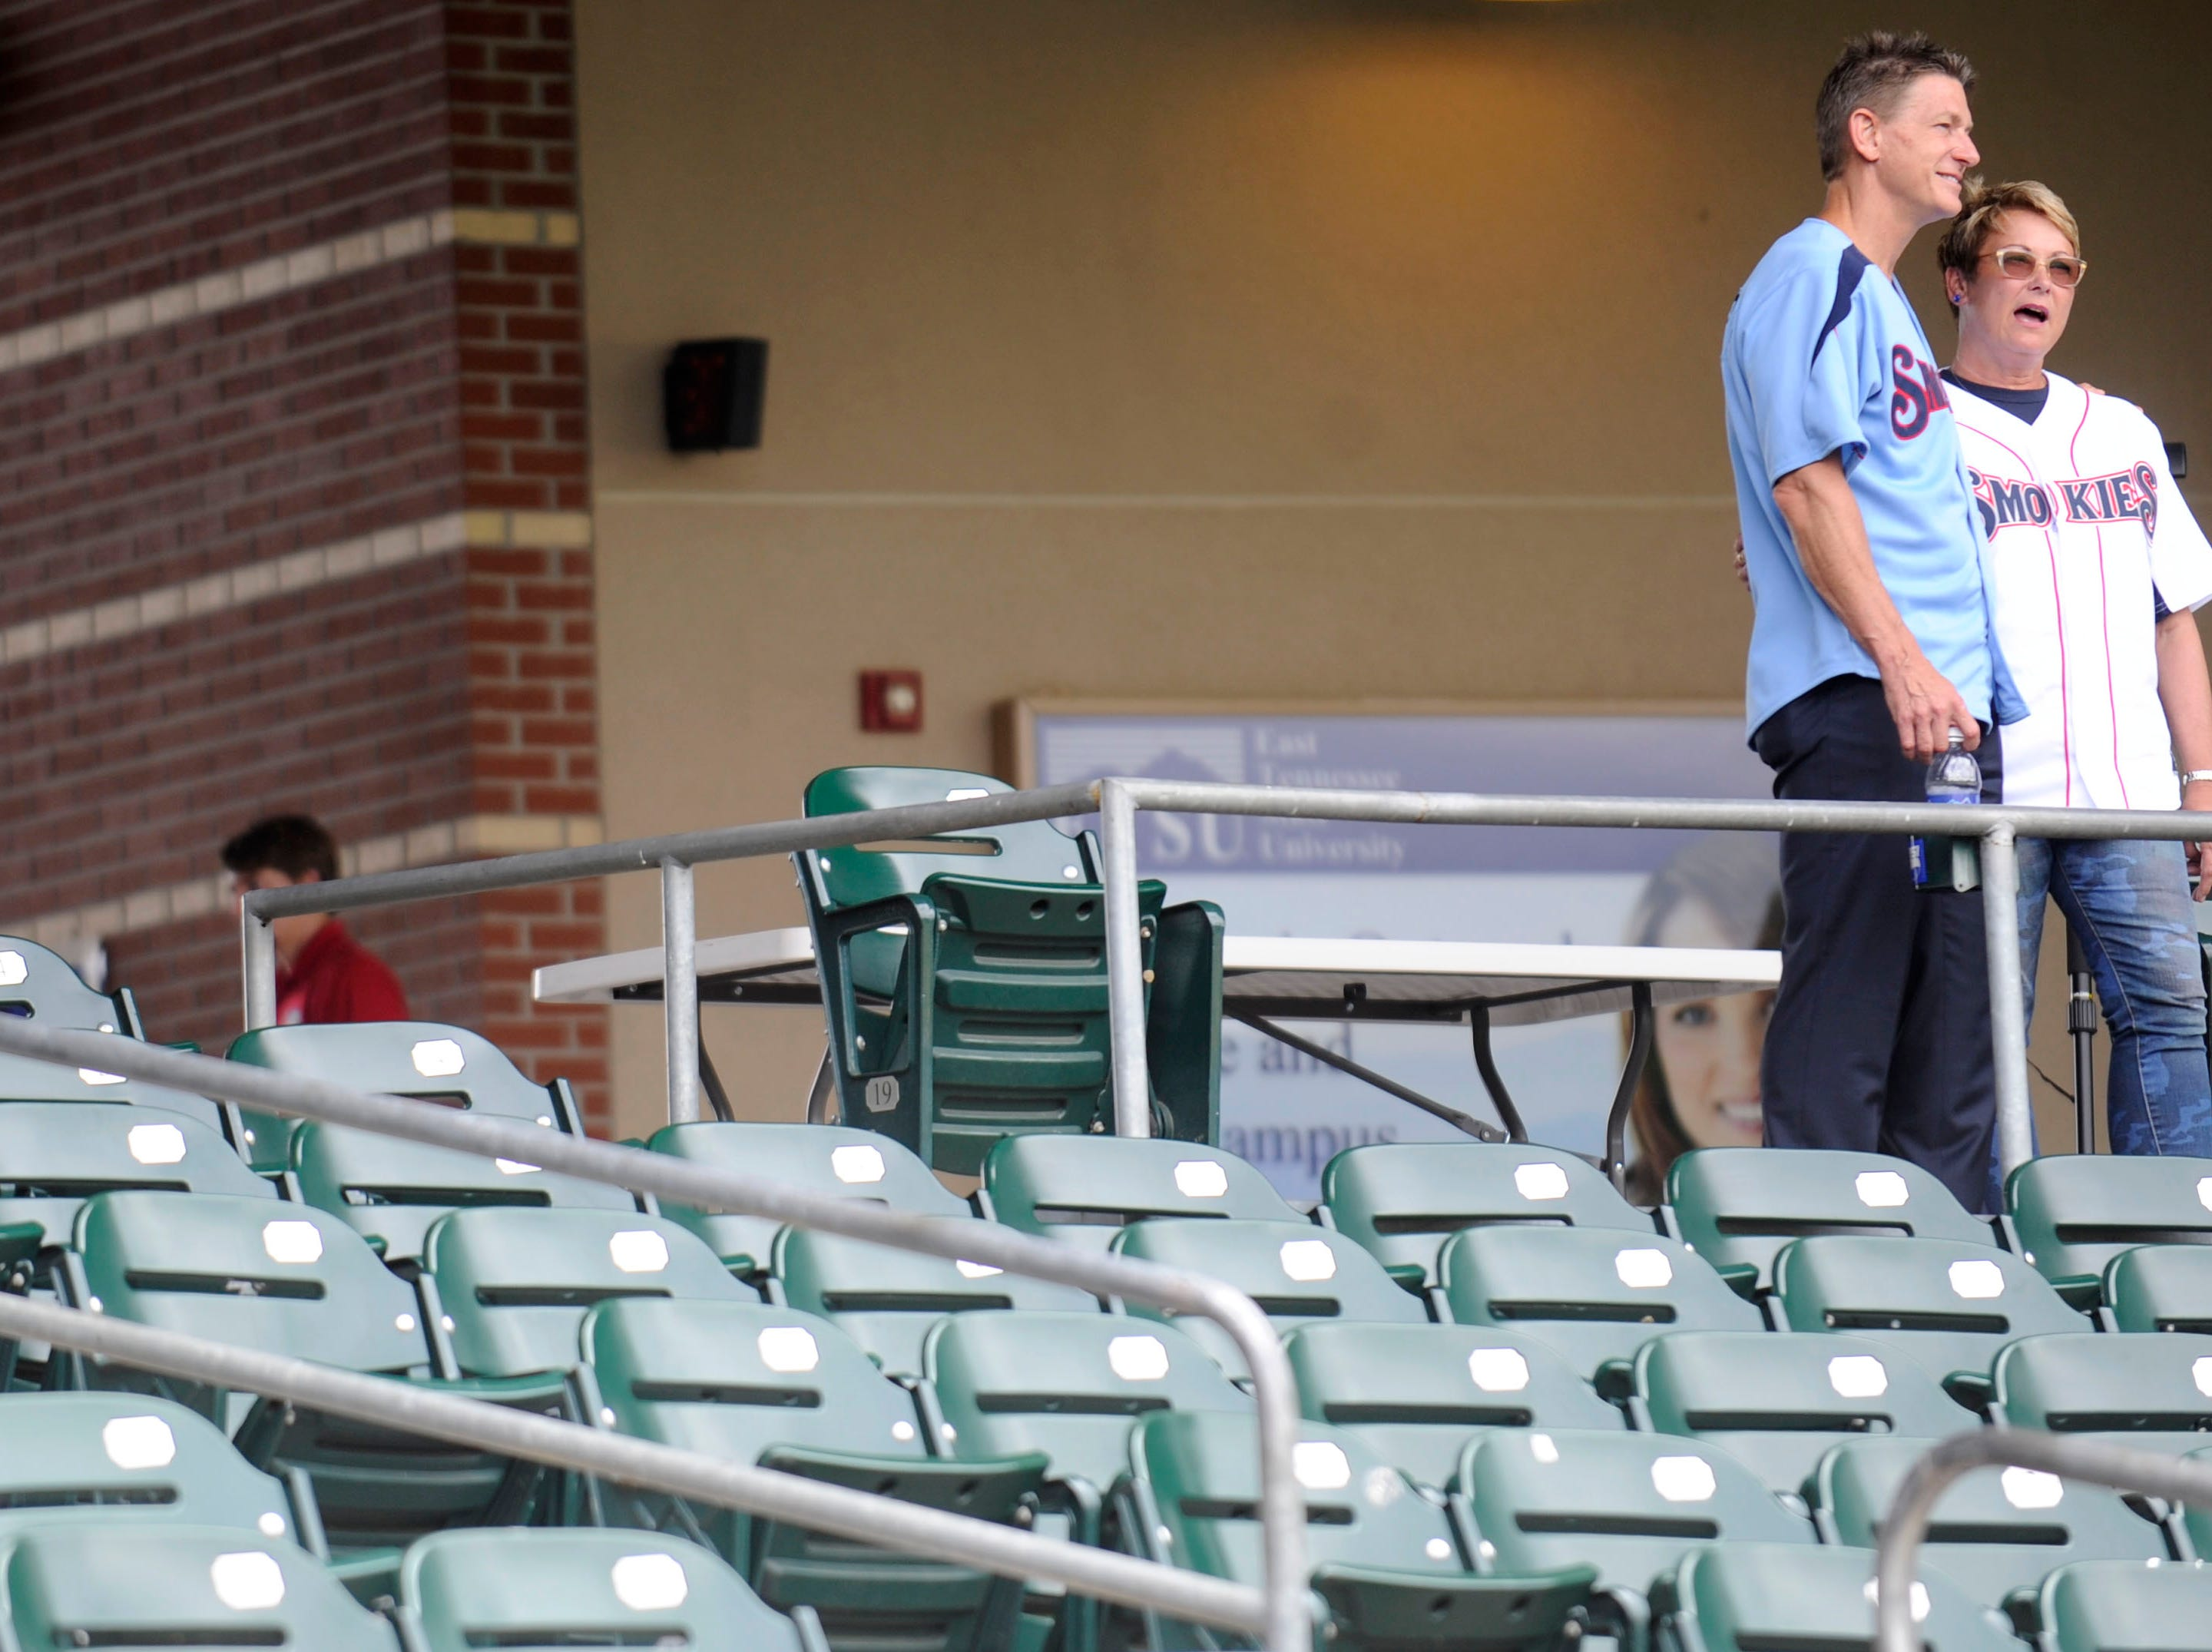 Randy Boyd, left, and his wife Jenny, were announced as the new owners of the minor league Tennessee Smokies baseball team during a press conference at the Kodak ball park, Friday, June 28, 2013.